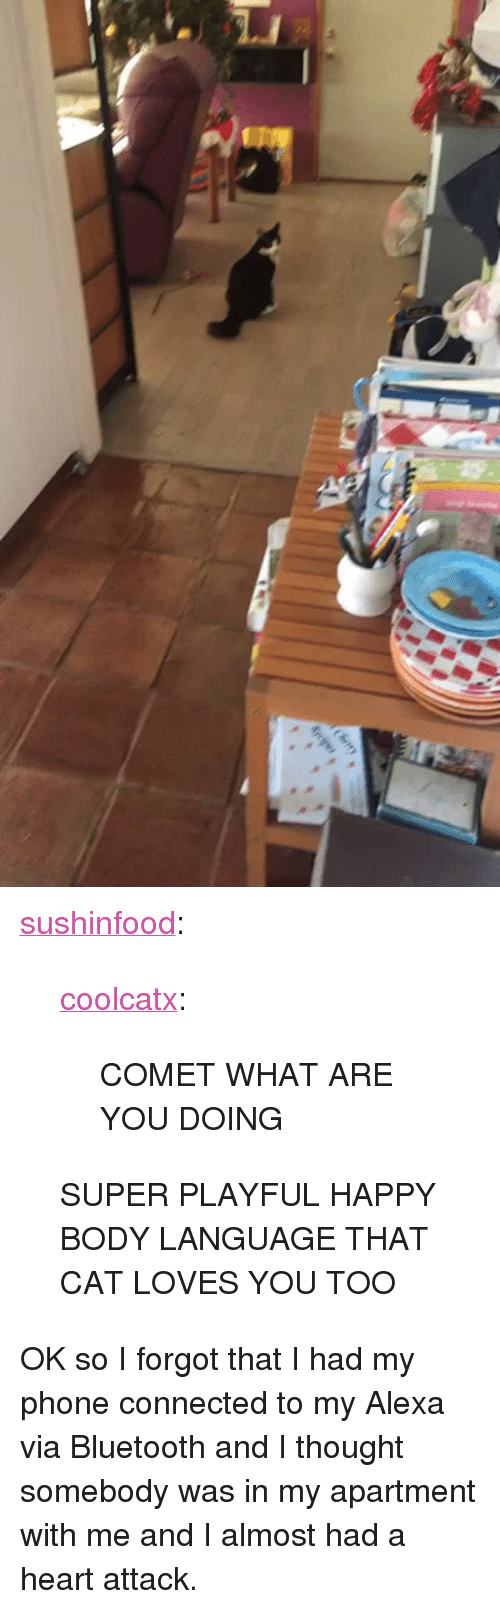 """Almost Had A Heart Attack: <p><a href=""""http://sushinfood.tumblr.com/post/169253064755/coolcatx-comet-what-are-you-doing-super-playful"""" class=""""tumblr_blog"""">sushinfood</a>:</p> <blockquote> <p><a href=""""http://coolcatx.tumblr.com/post/169096863958/comet-what-are-you-doing"""" class=""""tumblr_blog"""">coolcatx</a>:</p> <blockquote><p>COMET WHAT ARE YOU DOING</p></blockquote> <p>SUPER PLAYFUL HAPPY BODY LANGUAGE THAT CAT LOVES YOU TOO</p> </blockquote>  <p>OK so I forgot that I had my phone connected to my Alexa via Bluetooth and I thought somebody was in my apartment with me and I almost had a heart attack.</p>"""